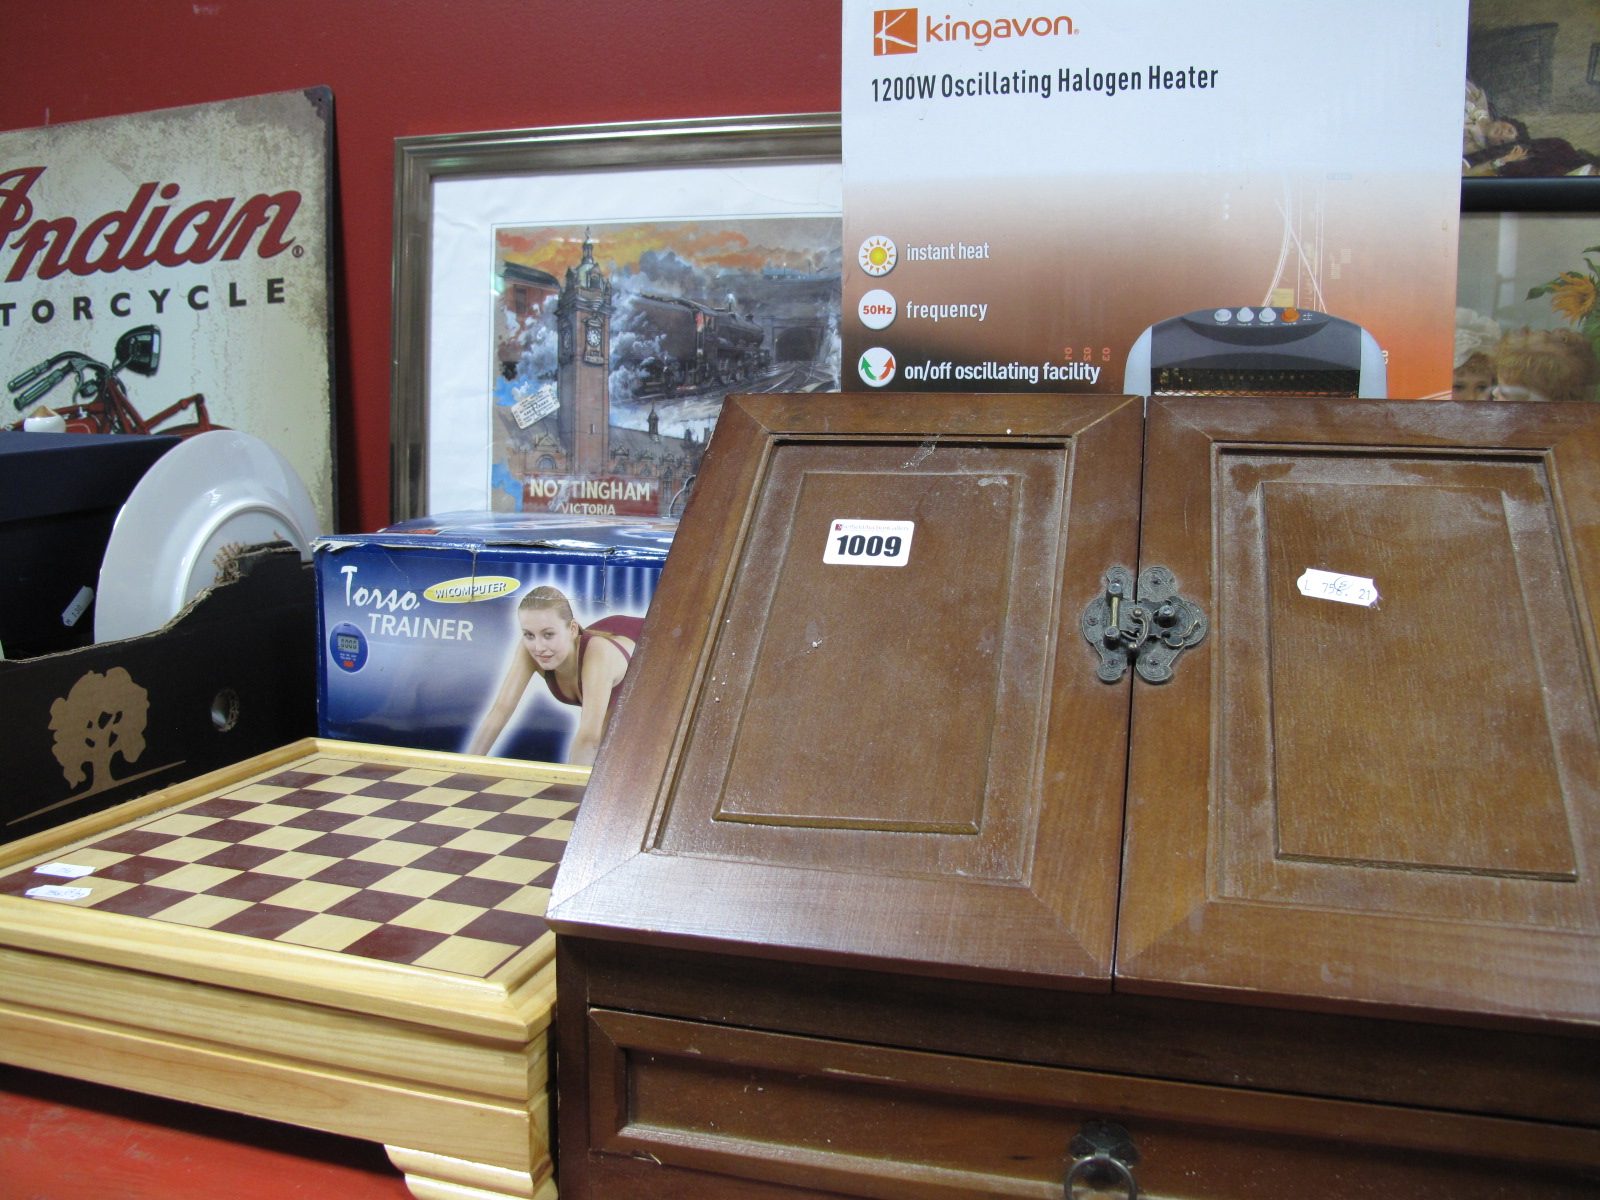 Lot 1009 - A Kingavon Halogen Heater, (untested sold for parts only), torso trainer, chess, stationery slope,